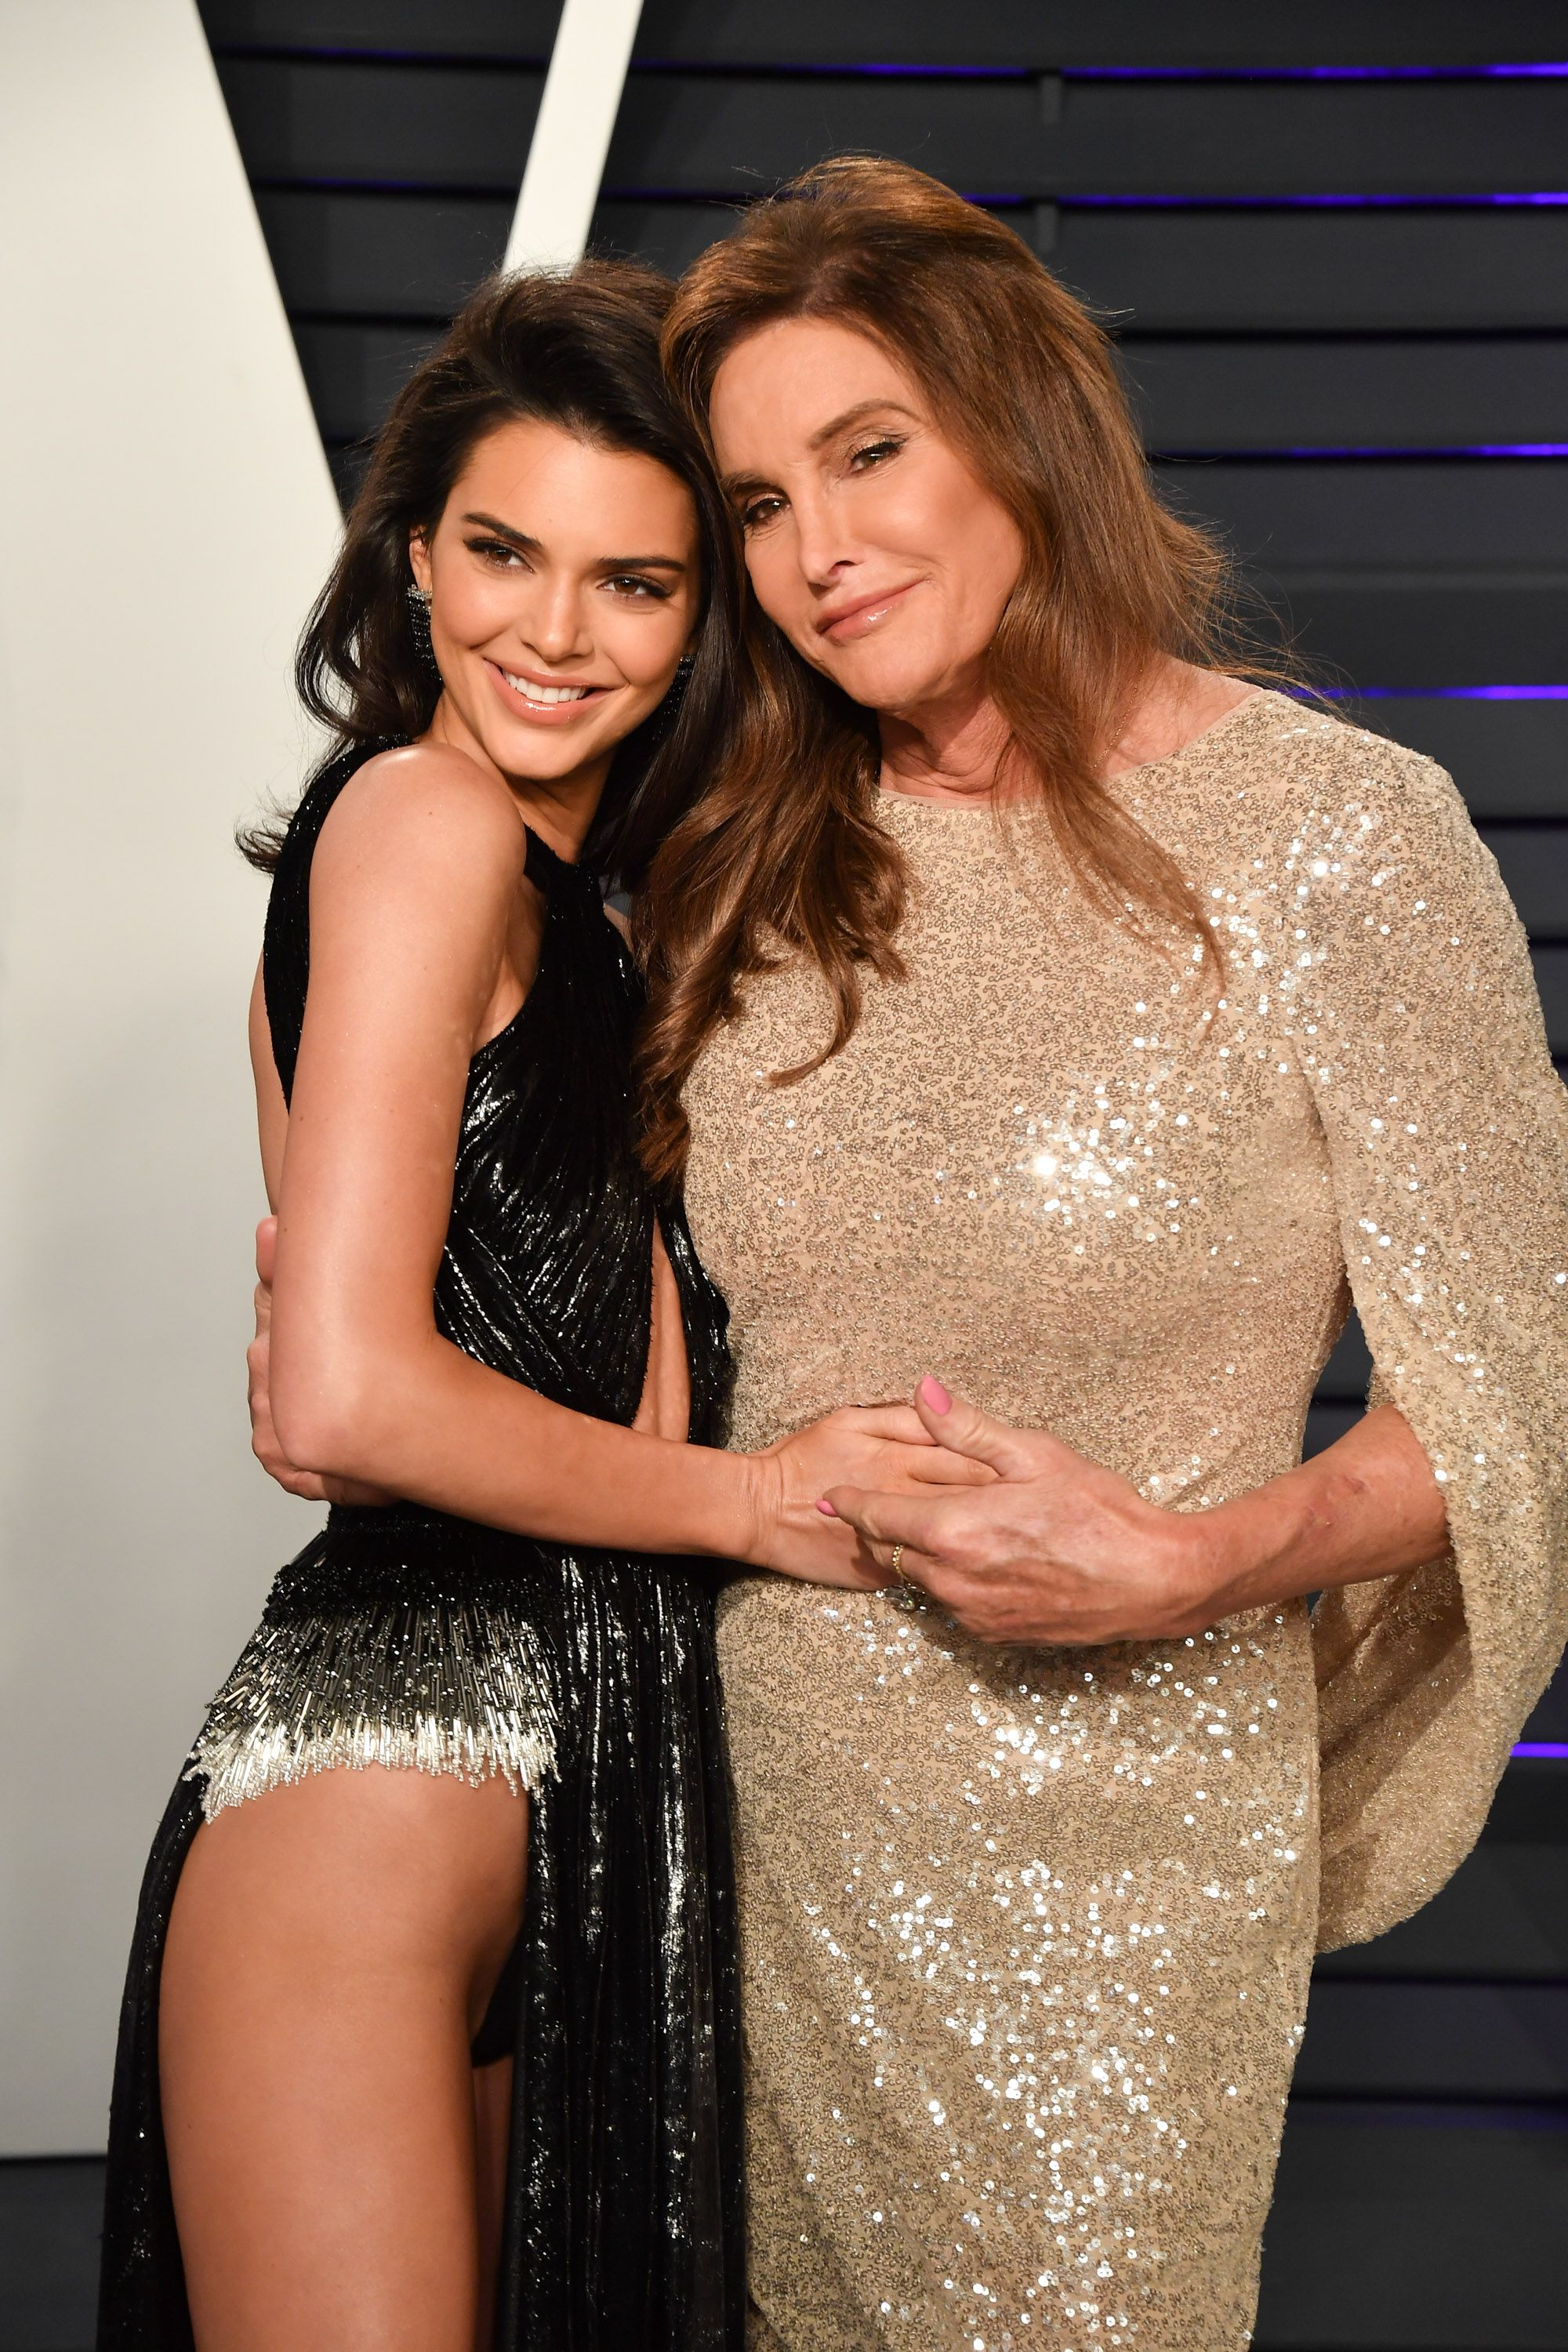 Caitlyn Jenner wants to set Kendall up with Myles Stephenson and we're here for it